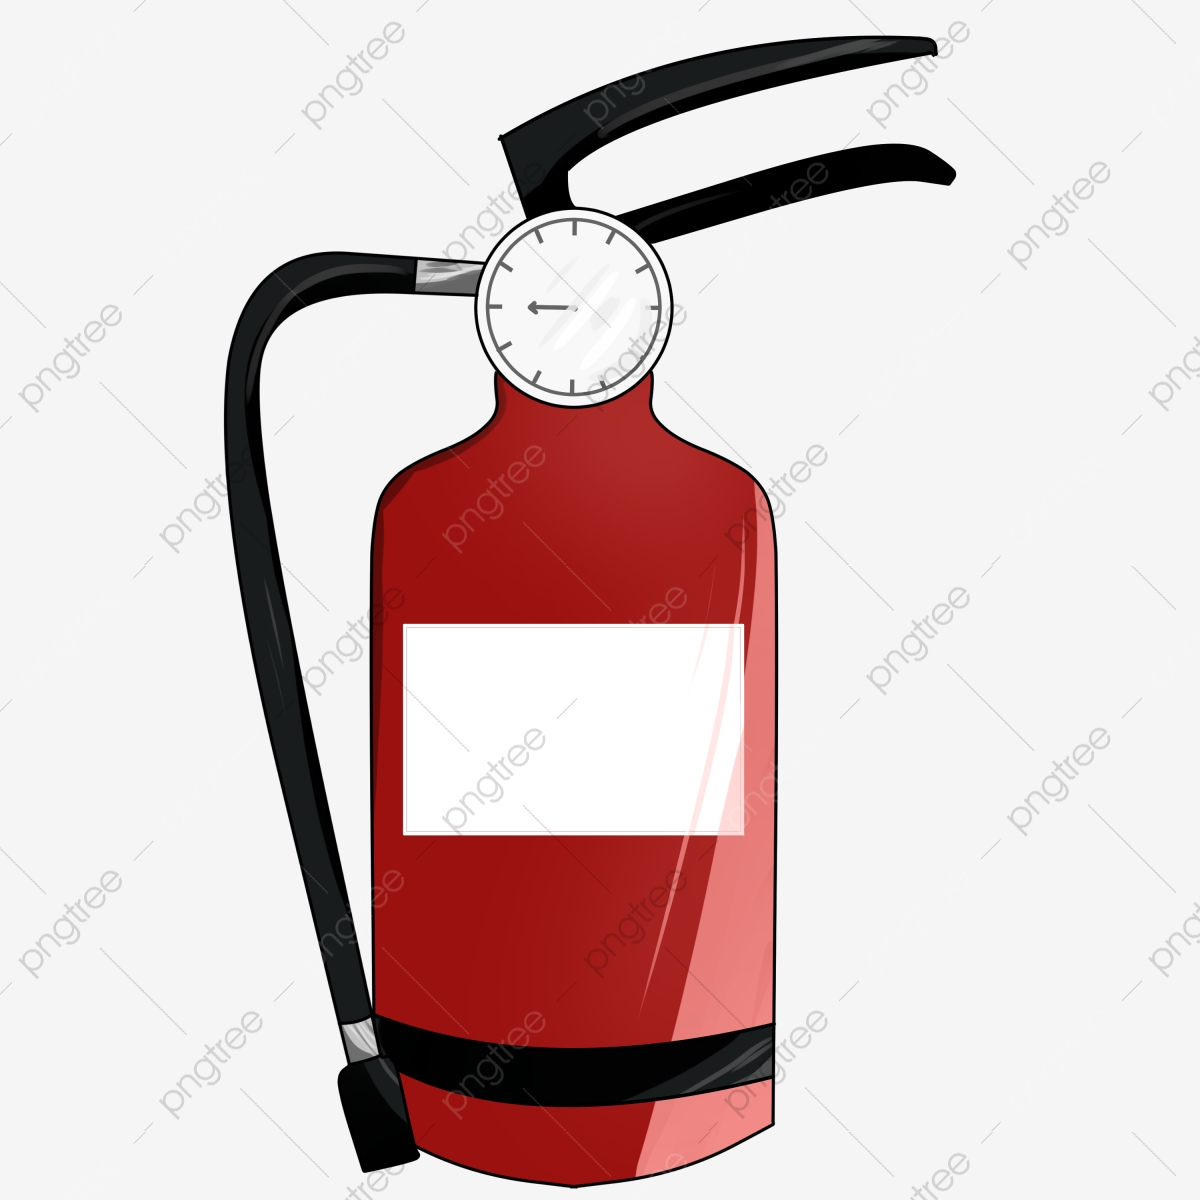 Fire Extinguisher Salute, Cartoon Hand Painted, Cartoon, Standing.